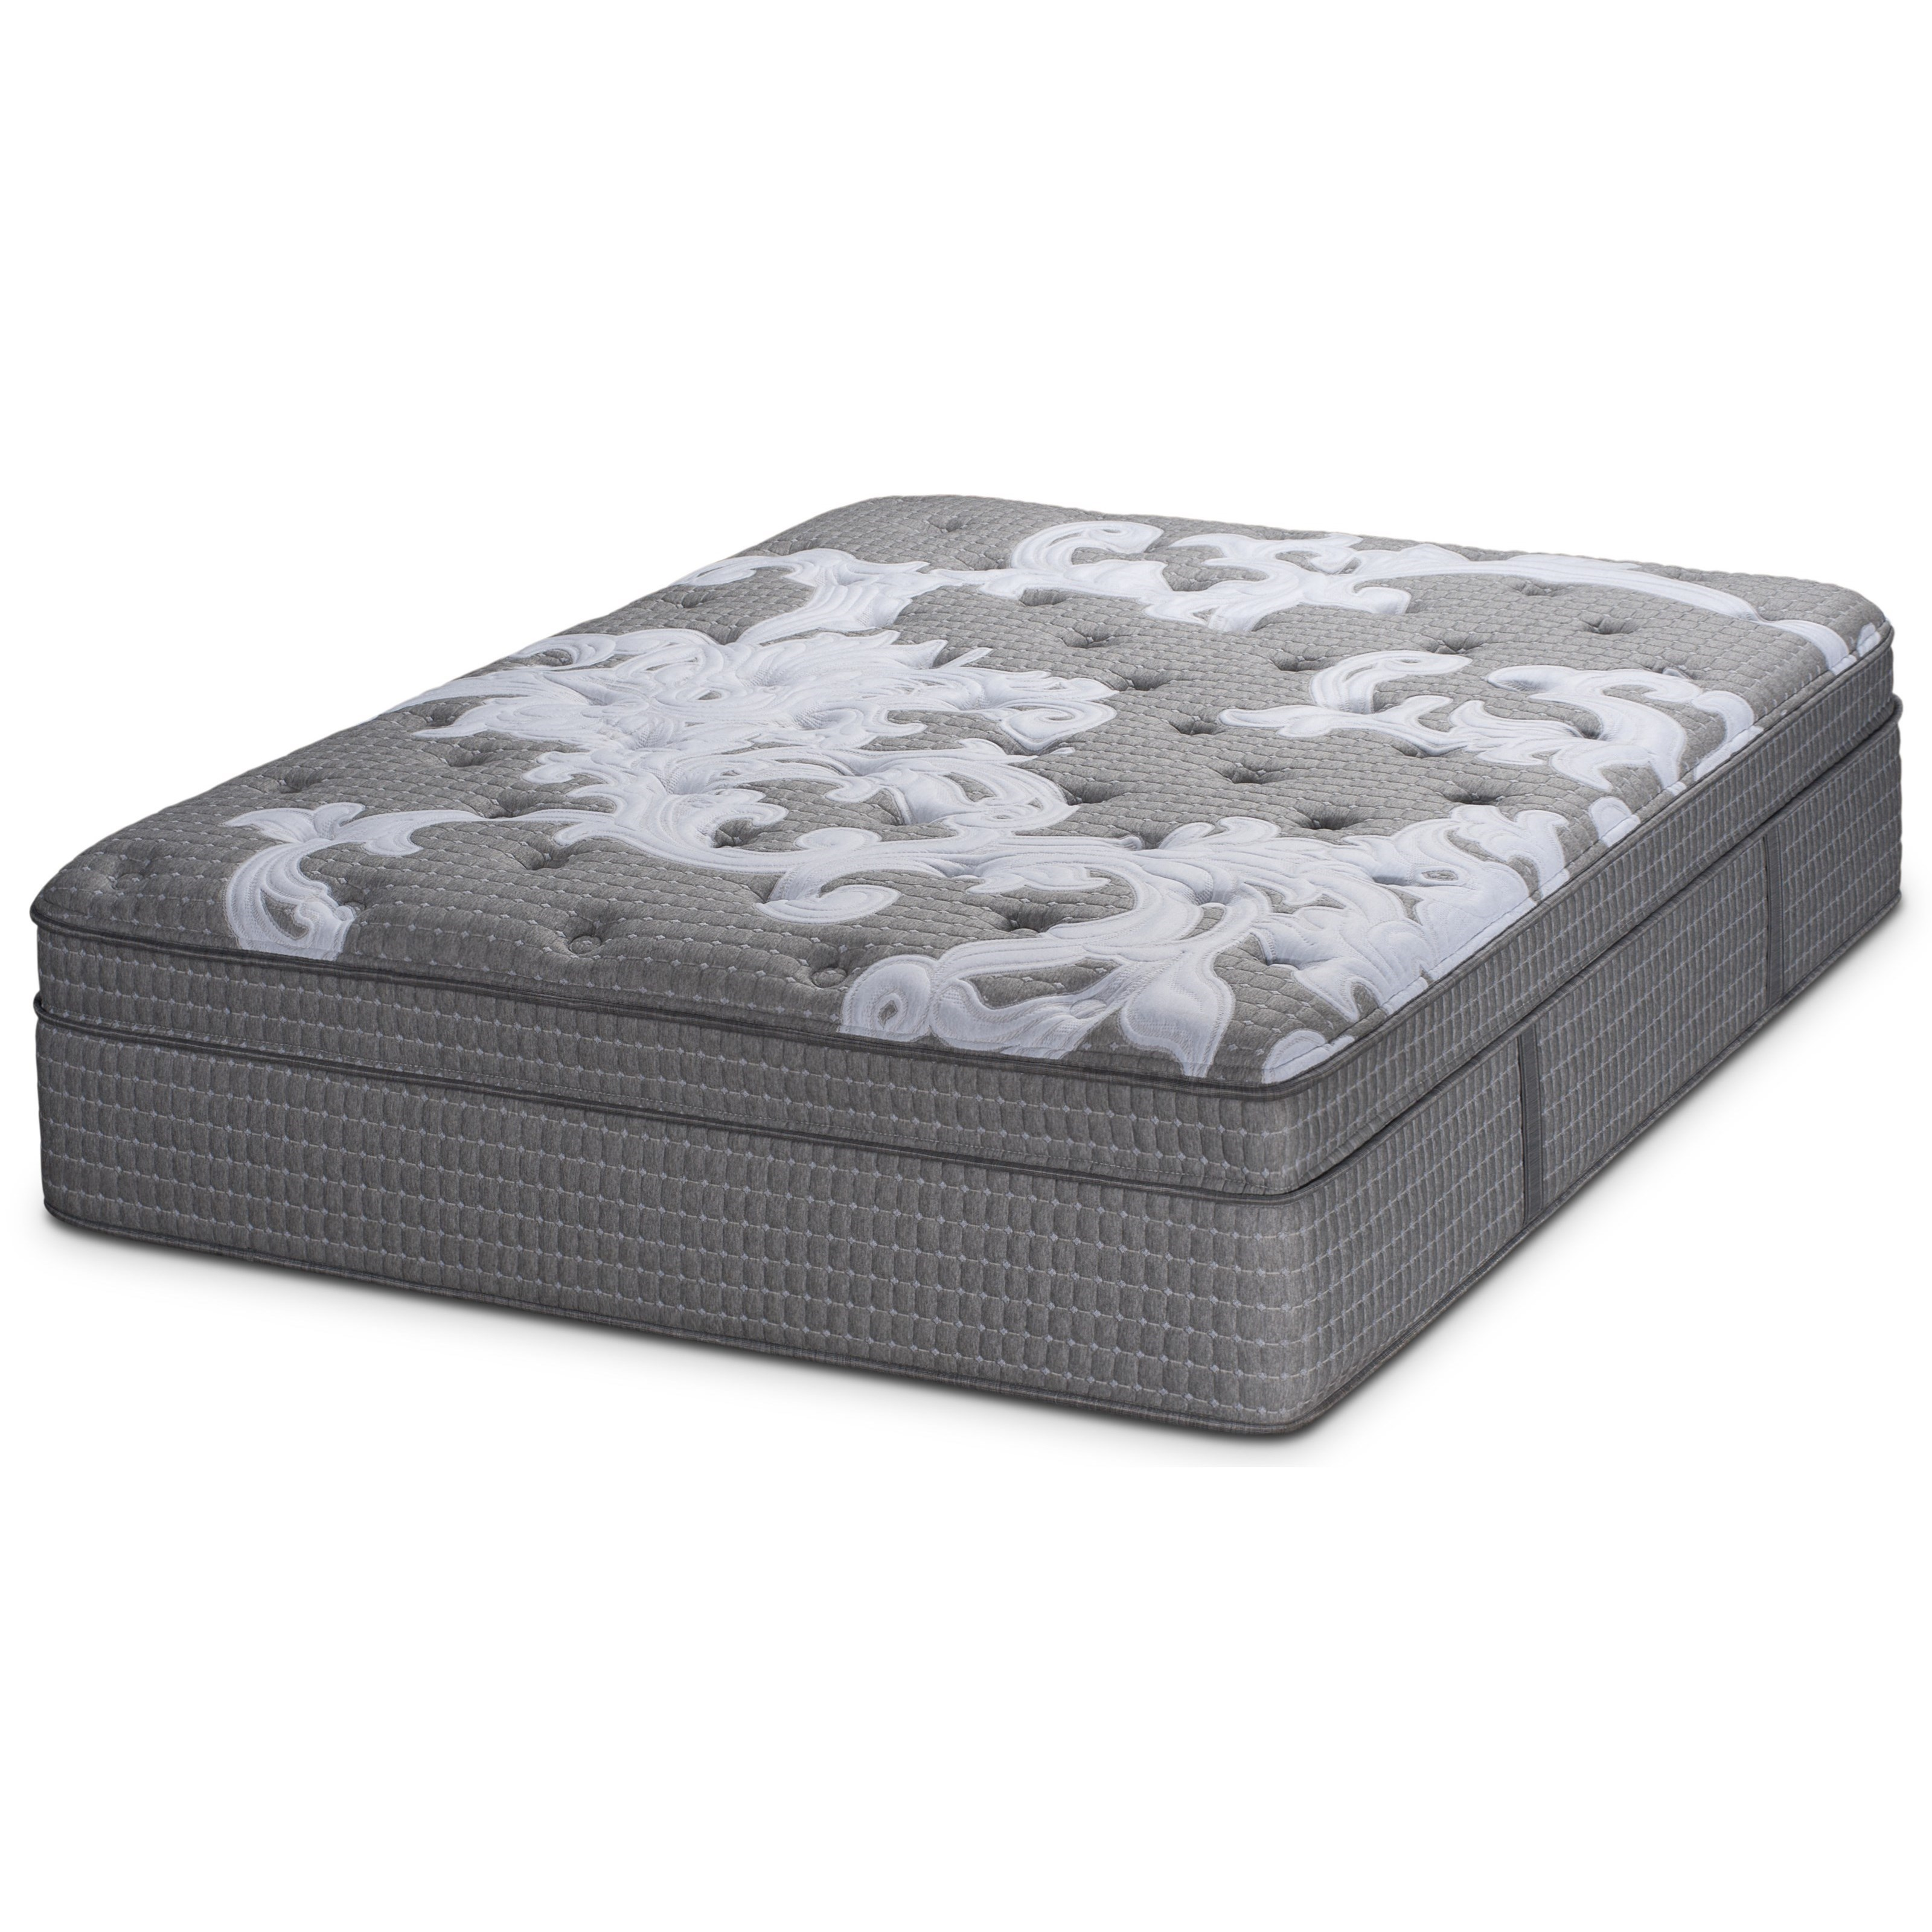 Sunshine ET Full Pocketed Coil Mattress by Restonic at Dunk & Bright Furniture